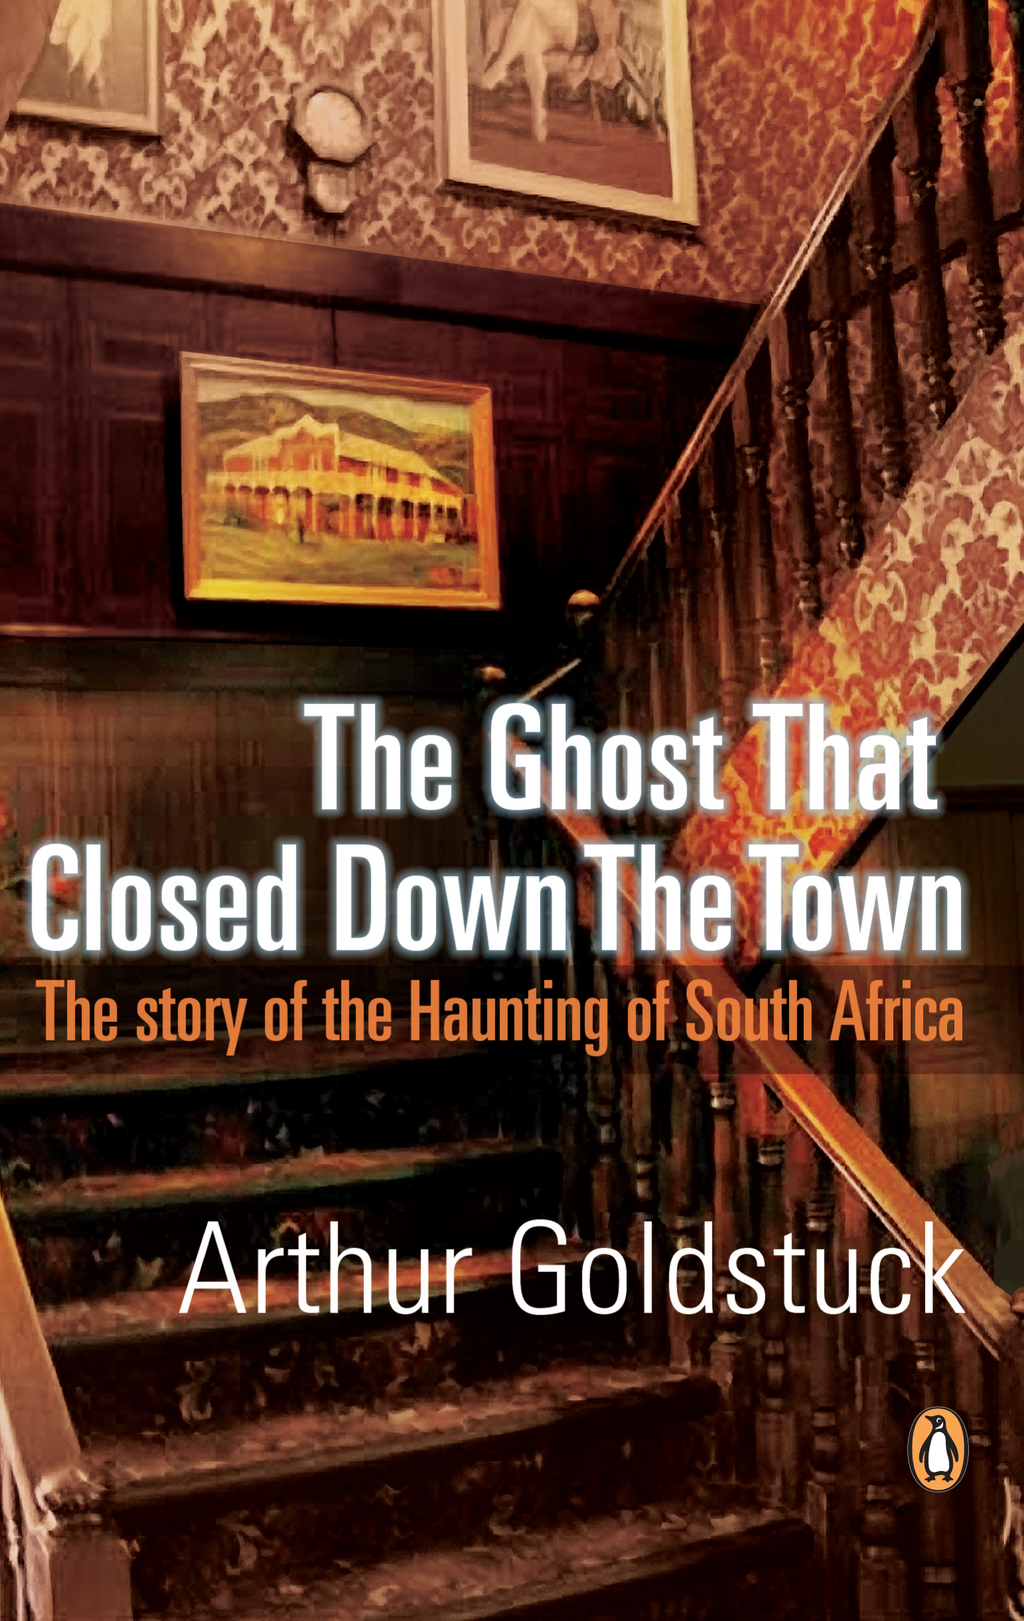 The Ghost That Closed Down The Town